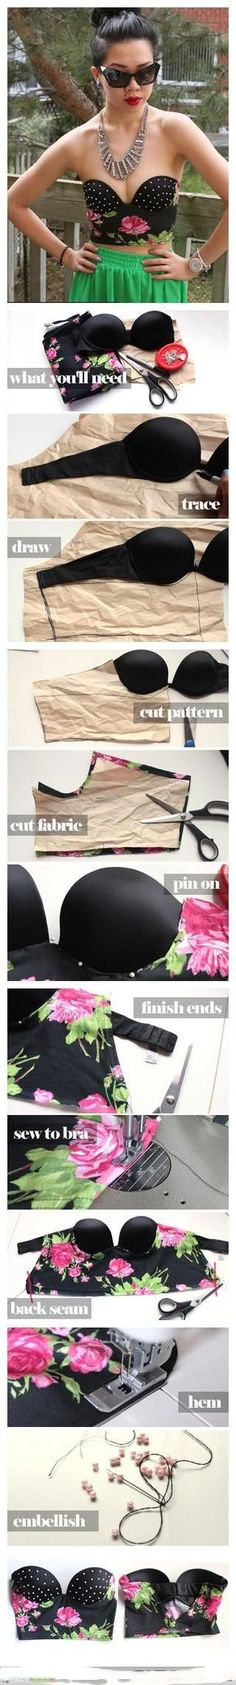 Creative way to use an old bra